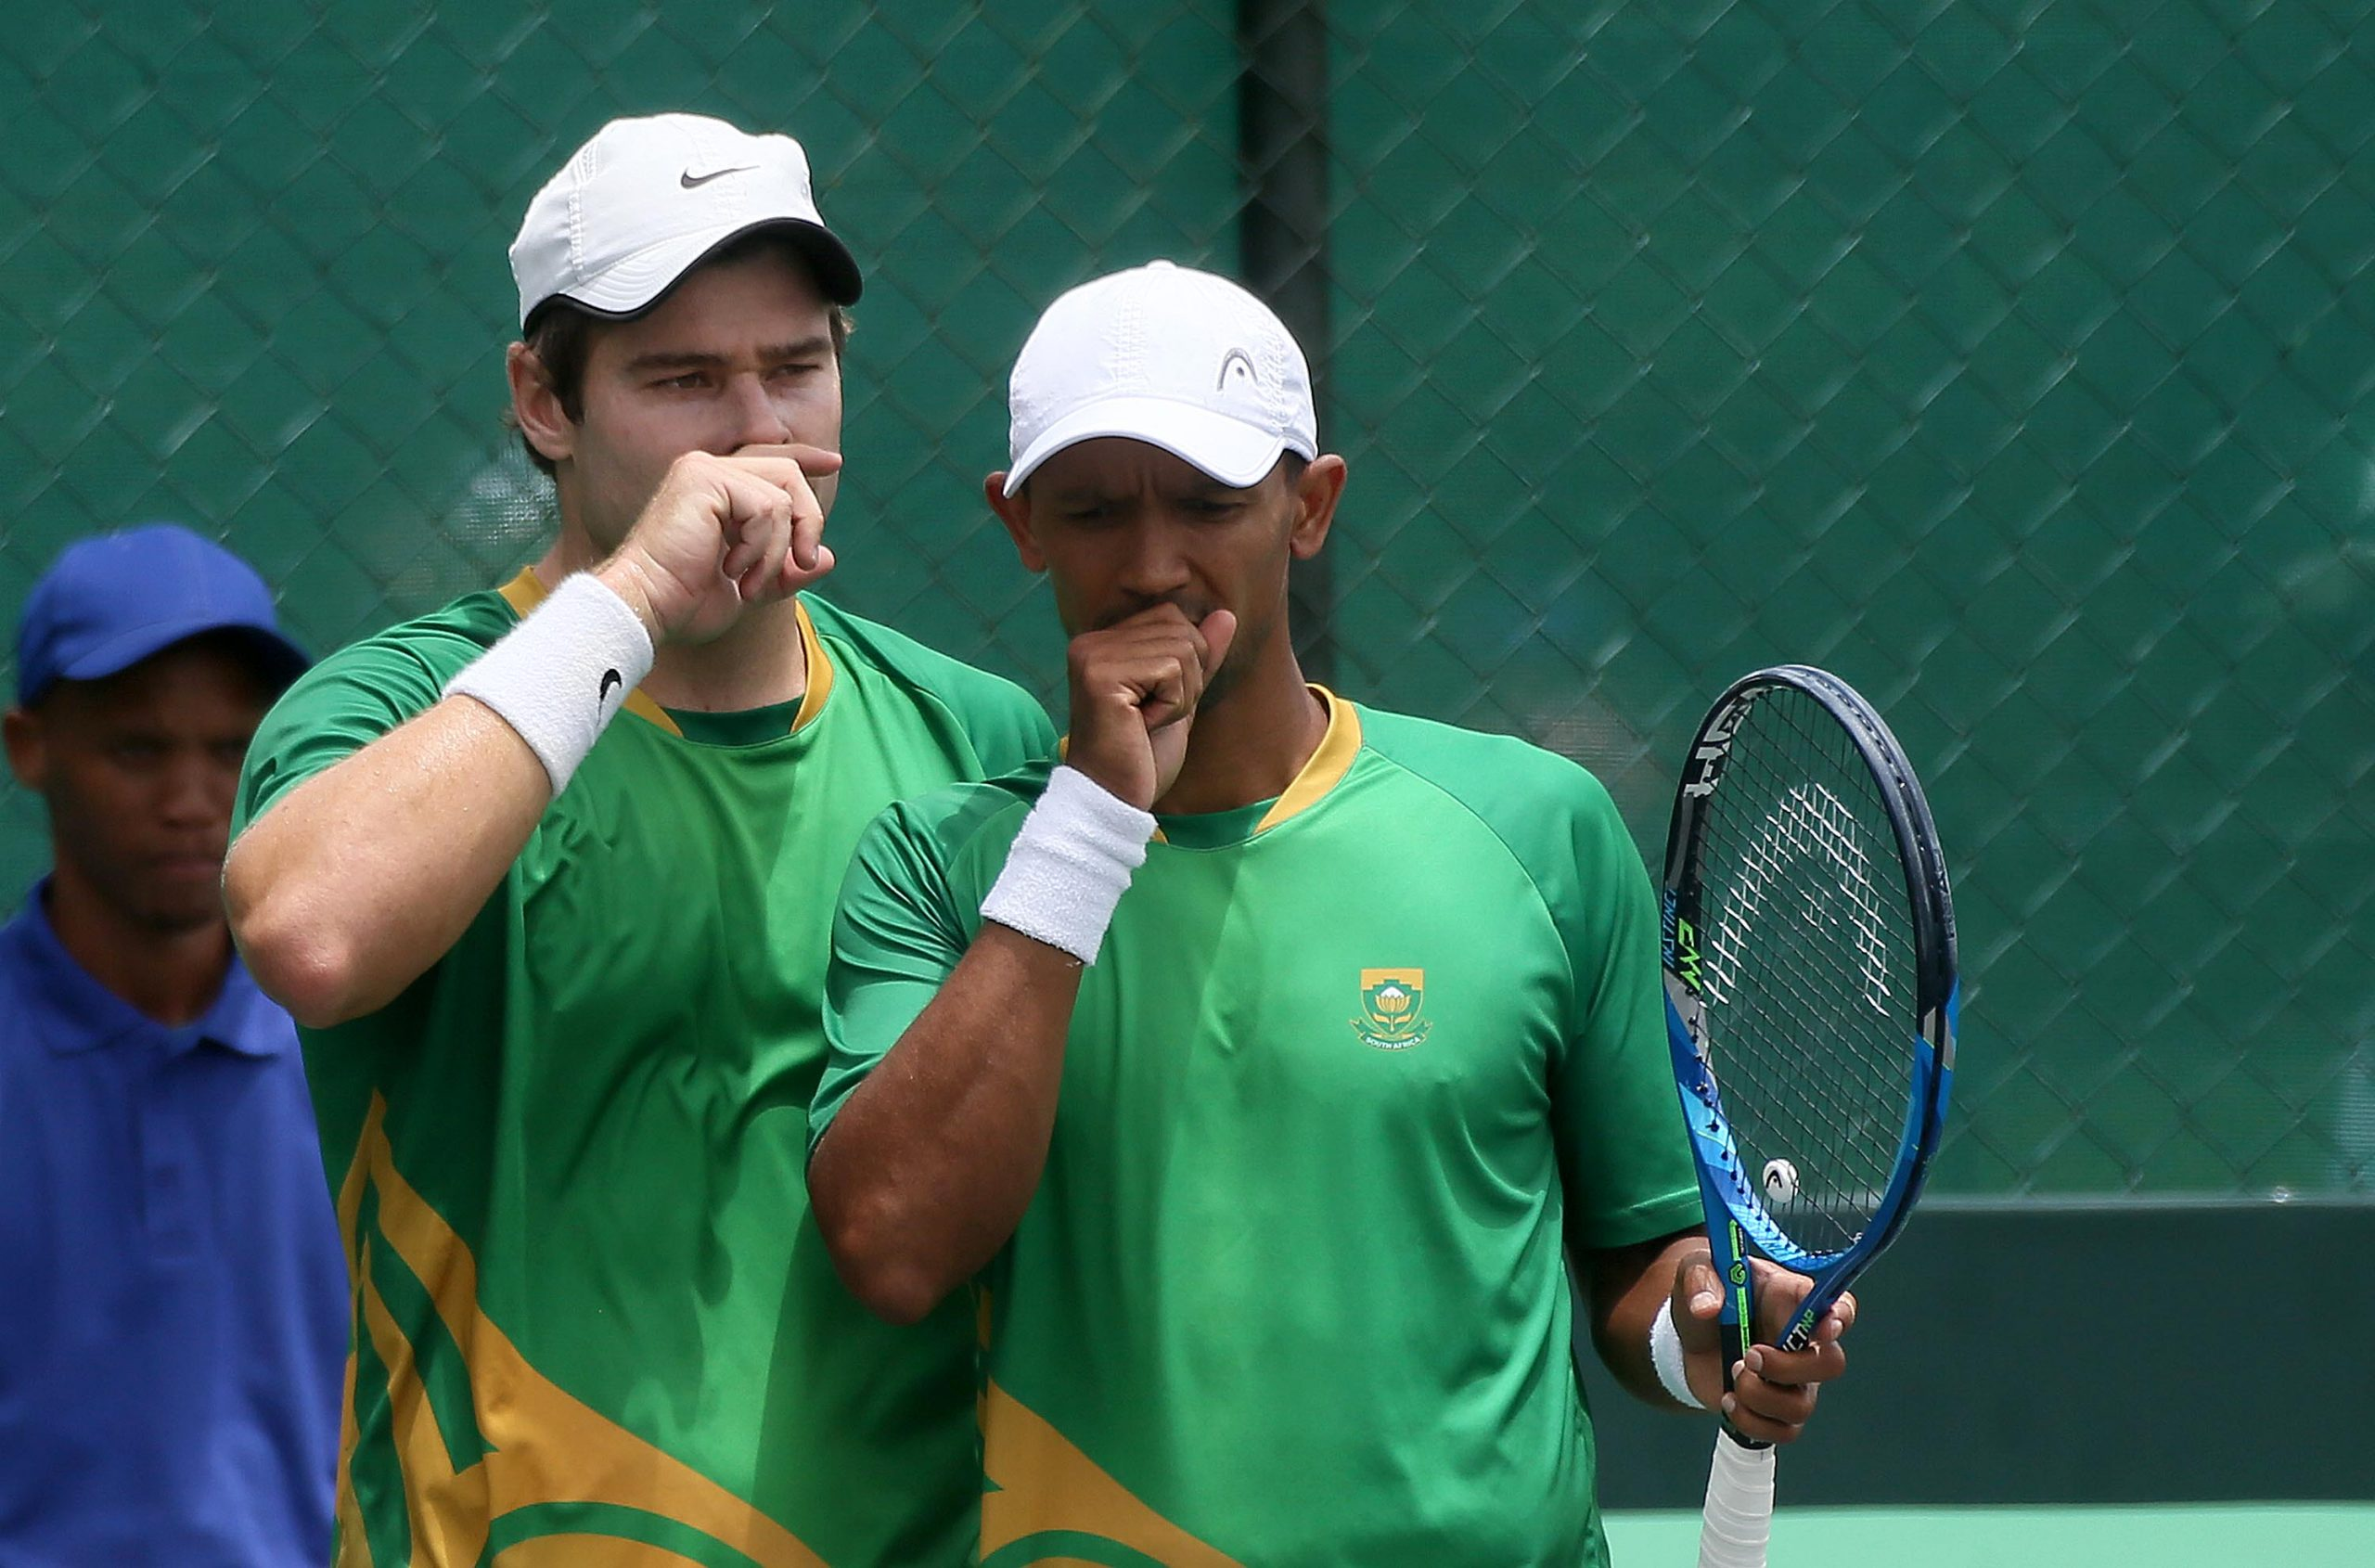 Ruan Roelofse to open South African Davis Cup campaign - Sports Leo